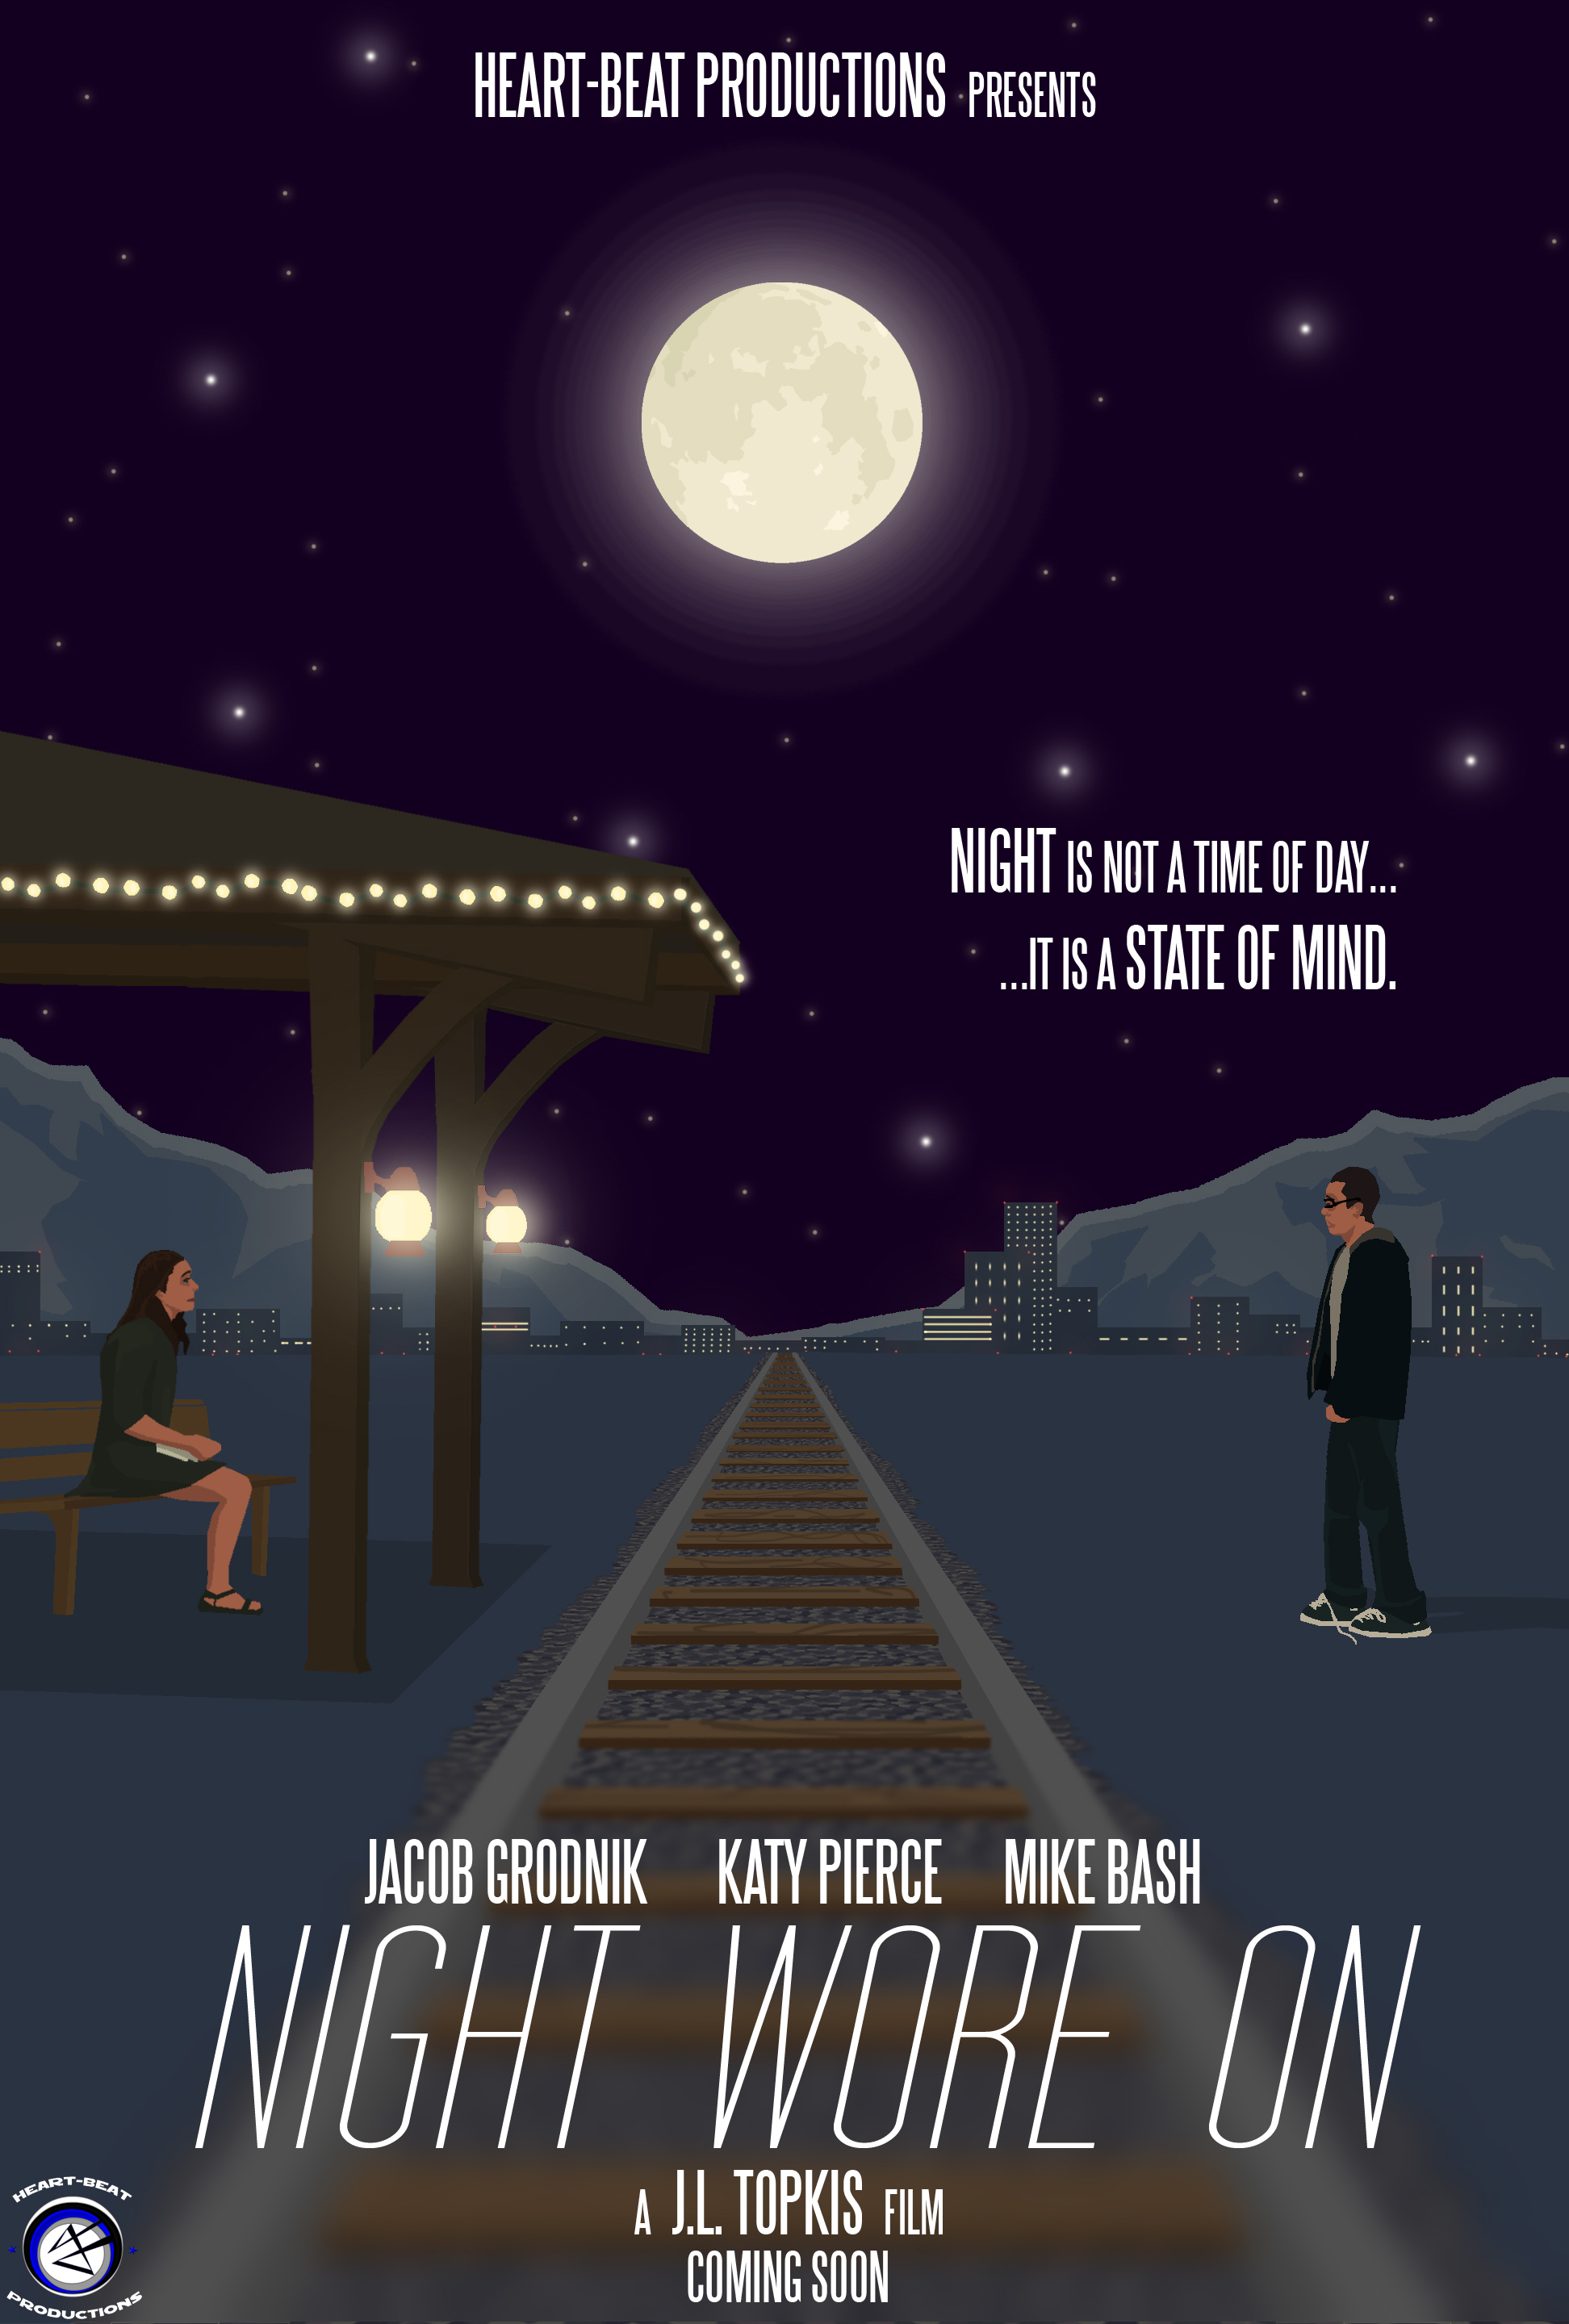 night wore on heart-beat productions film.jpg